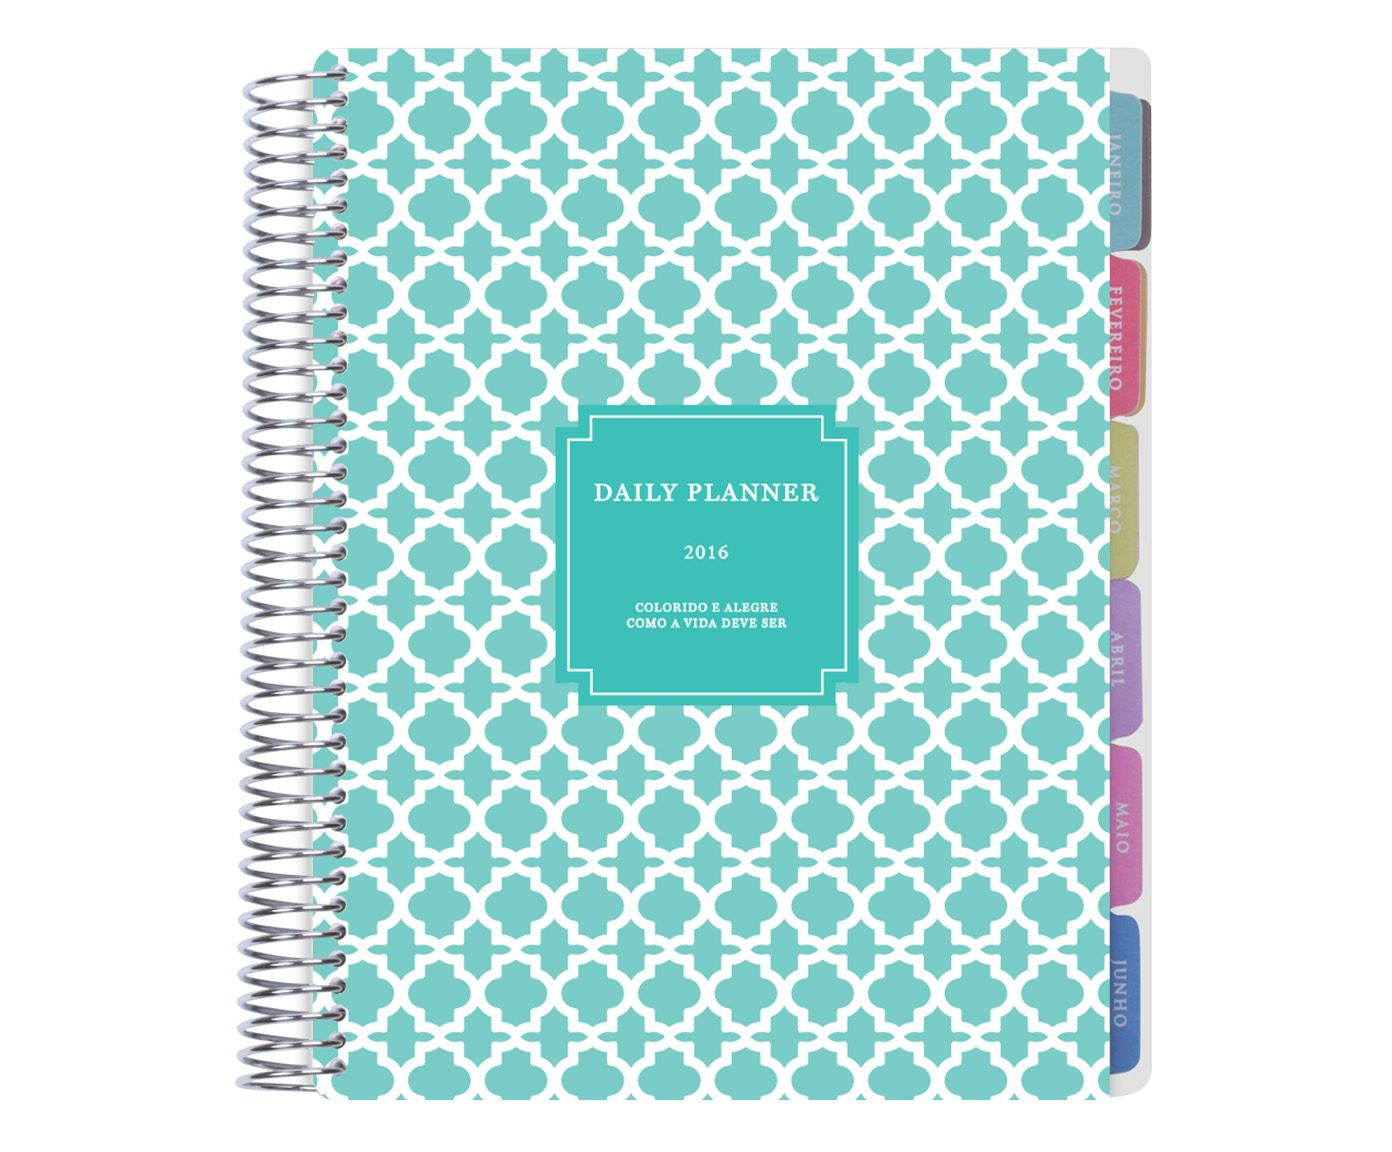 Daily Planner Marrocan Tiffany - 21x23,5cm | Westwing.com.br